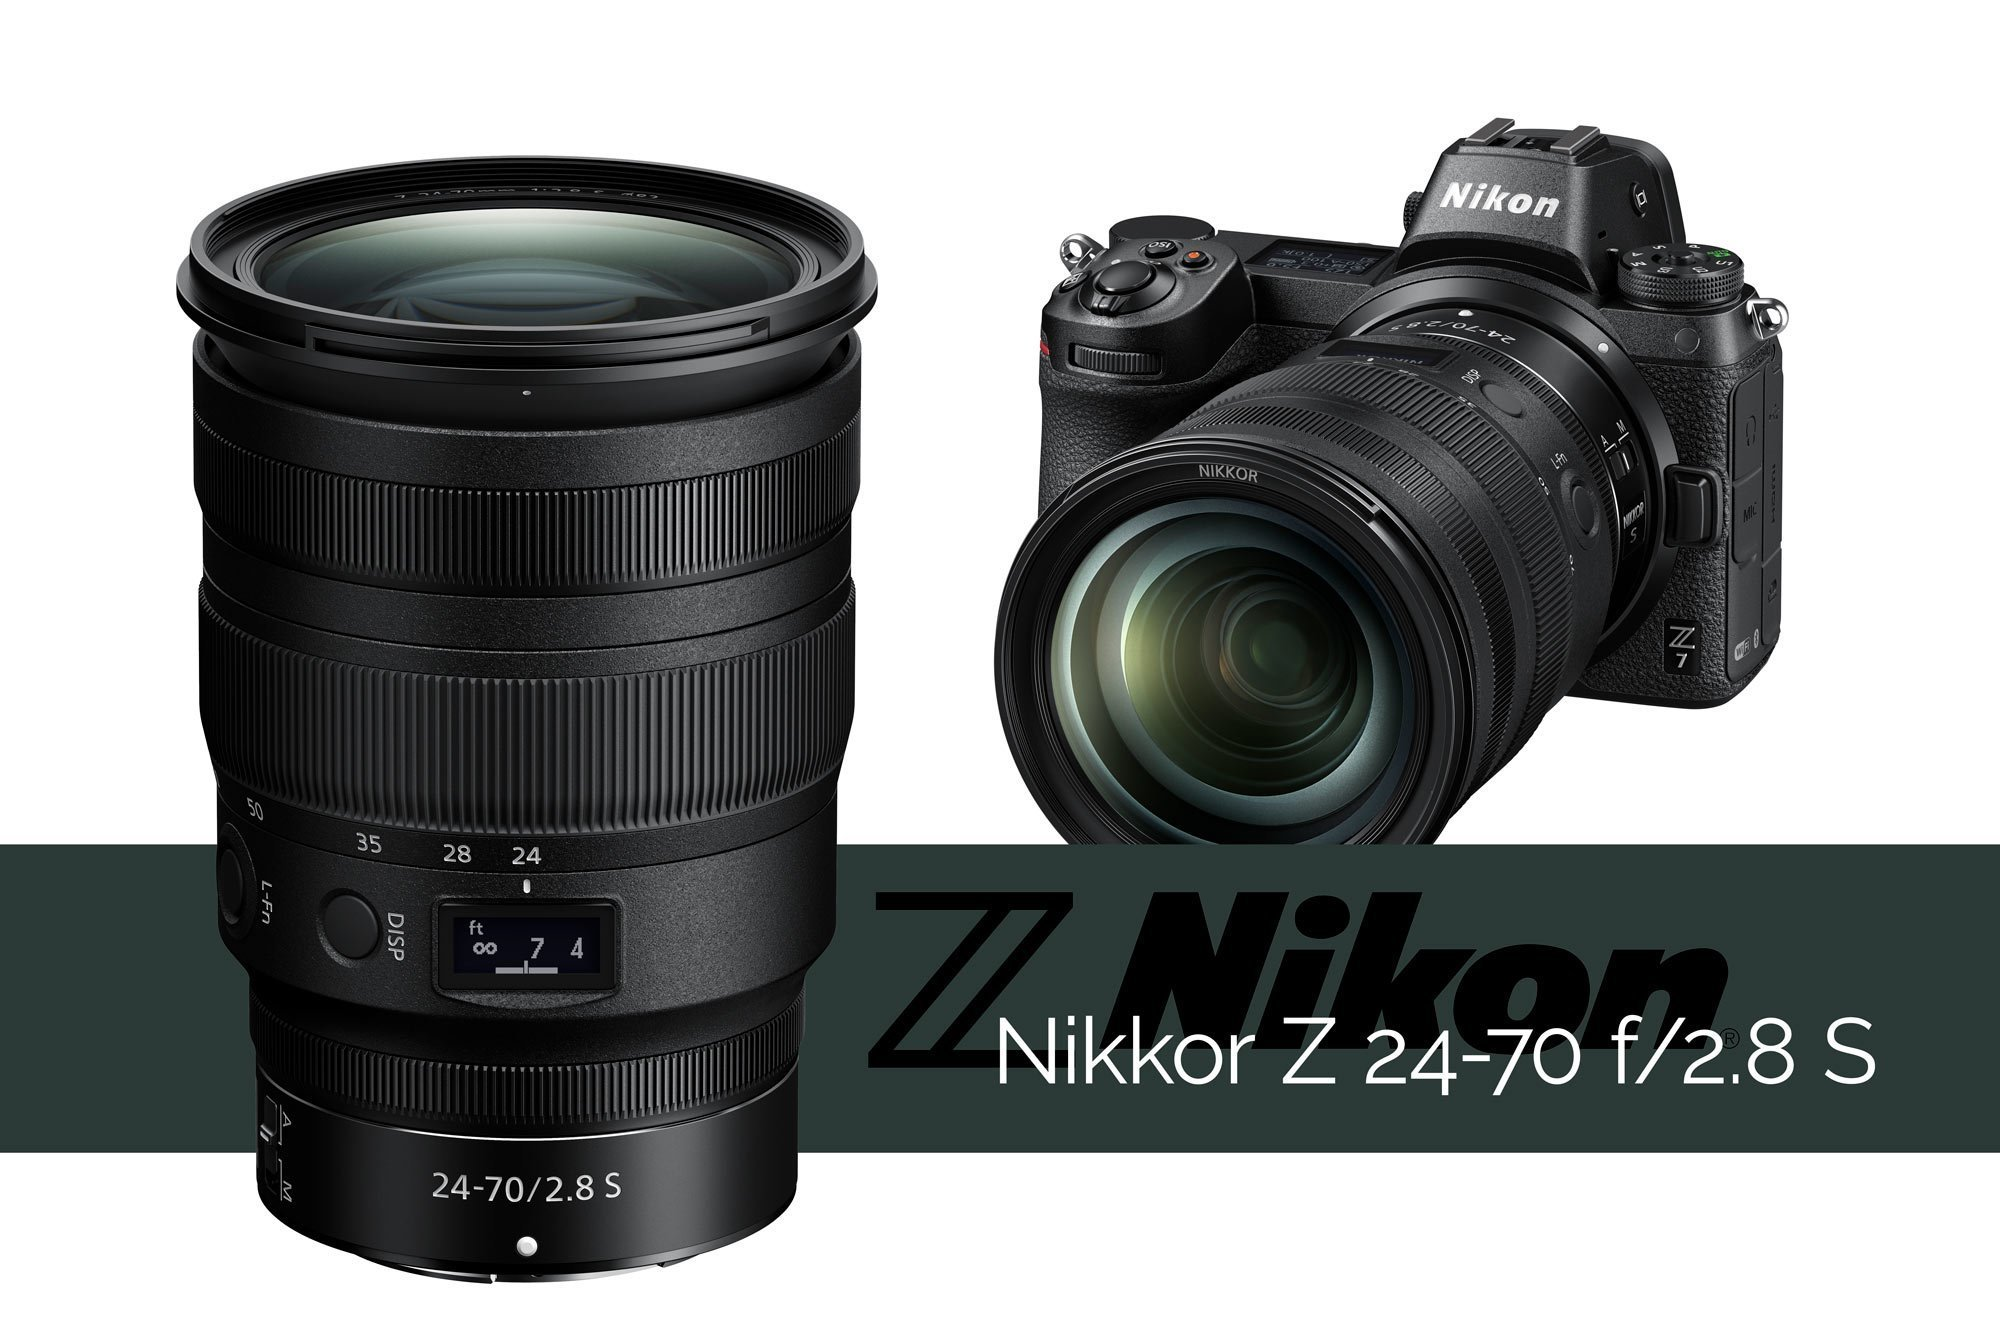 Nikon Announces Z 24-70 f/2 8 S & Firmware Updates, Fuji Announces